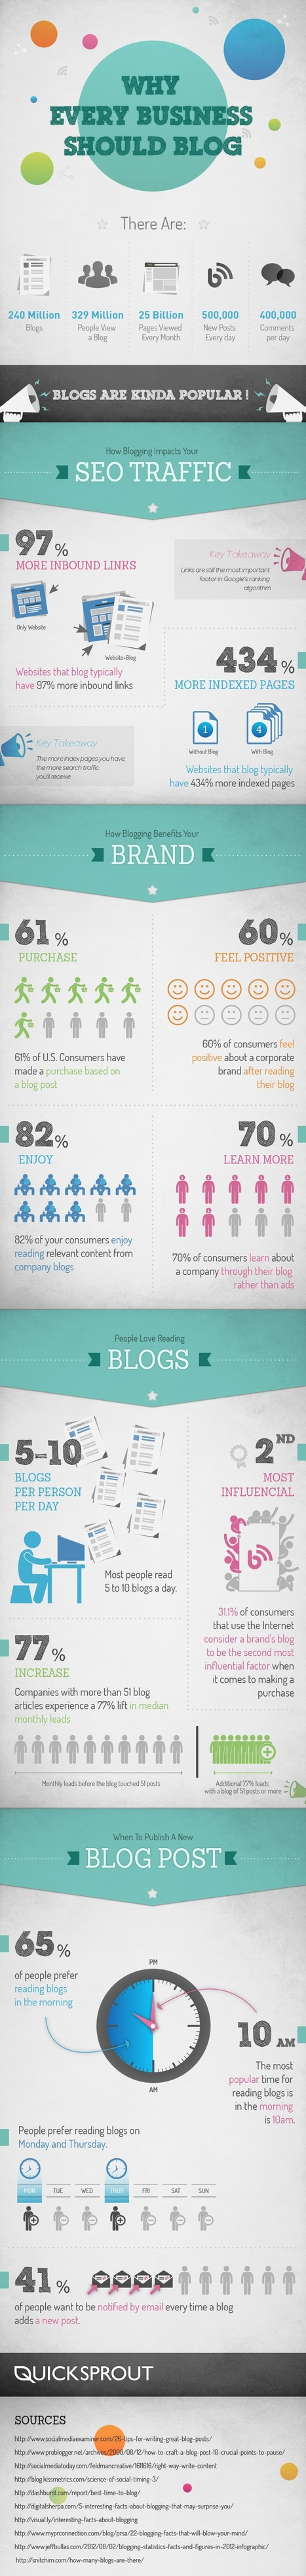 Why 98.3% Of Small Business Owners Should Blog In 2014 #infographic | MarketingHits | Scoop.it